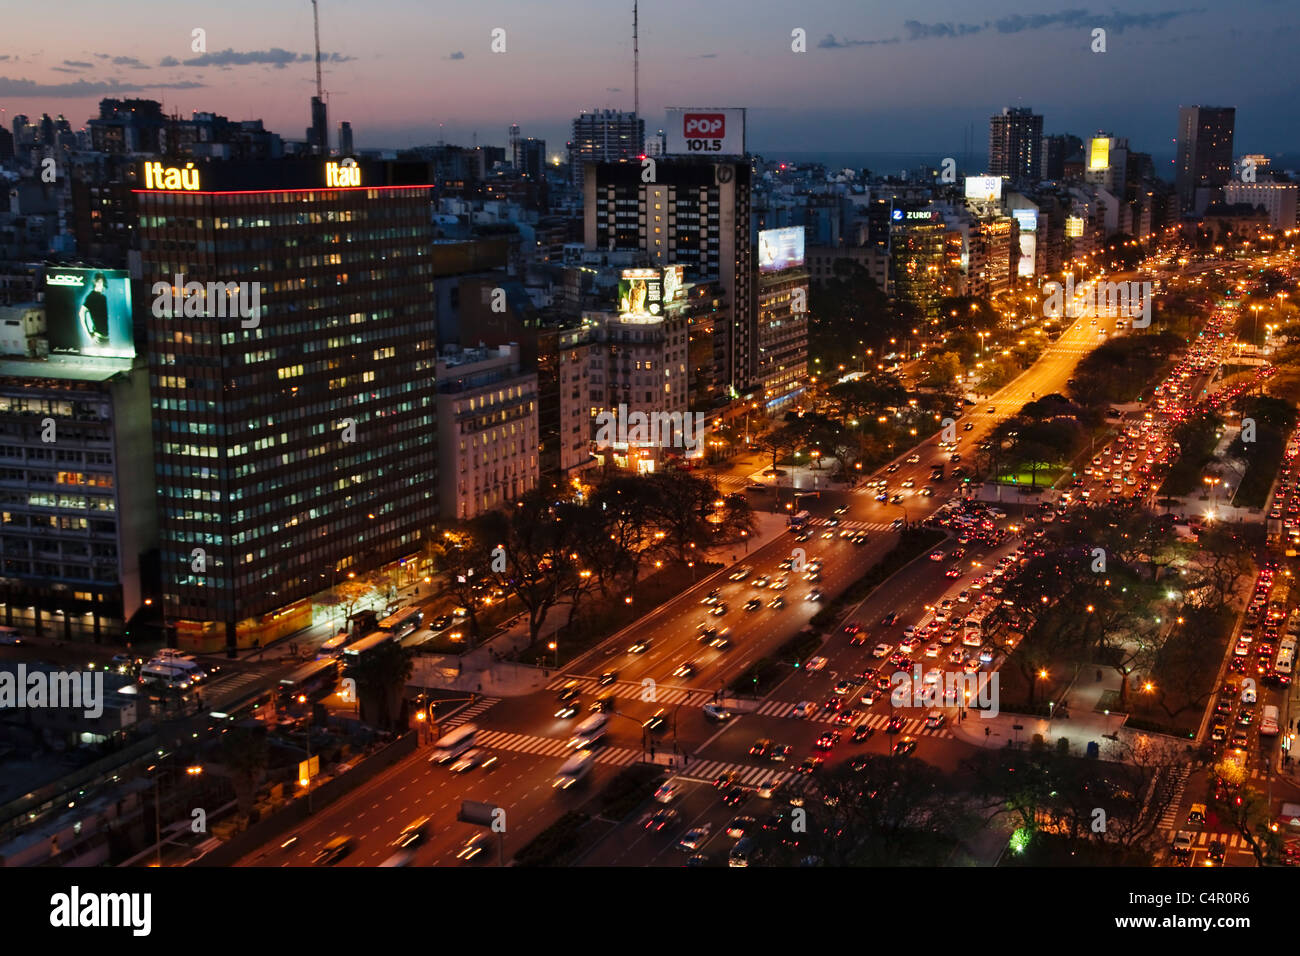 Aerial view of Avenue 9 de Julio at night, Buenos Aires, Argentina - Stock Image